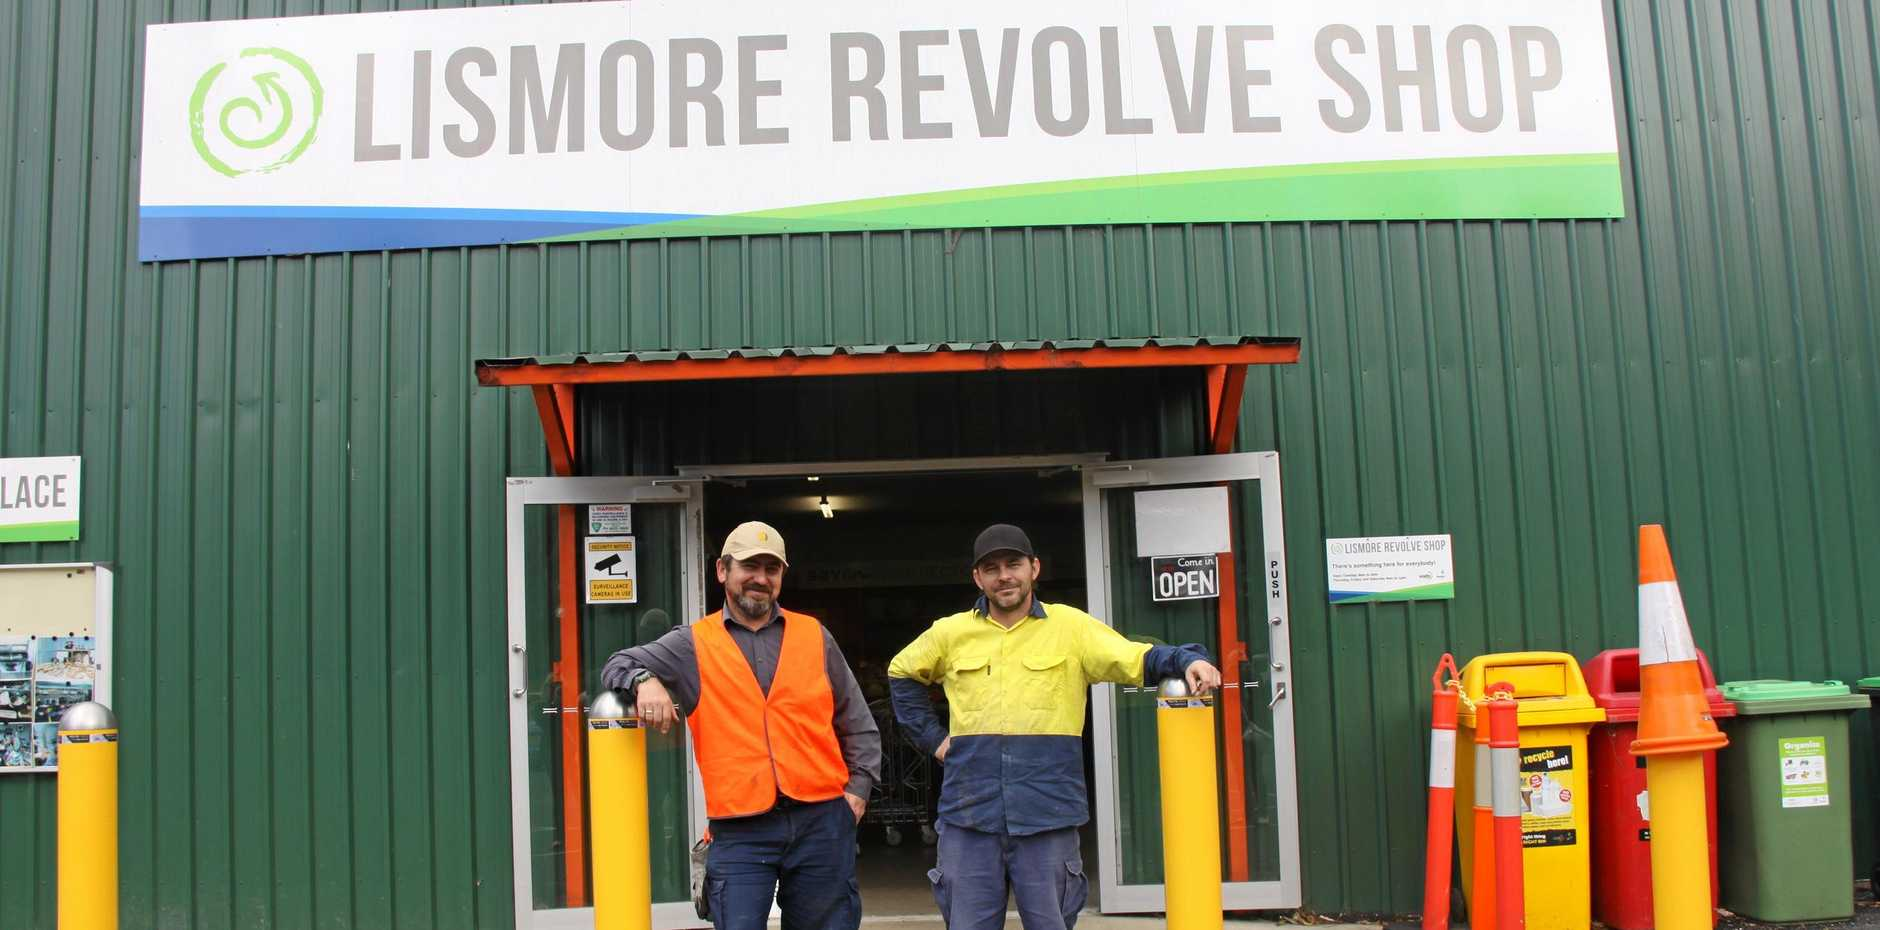 REVOLVE REVIVED: Lismore City Council has announced it hopes to have the front half of the facility open after it closed due to fire on August 11. Revolve is located within the Lismore Recycling & Recovery Centre on Wyrallah Rd, sells a range of second-hand goods, promoting reuse and keeping them out of landfill